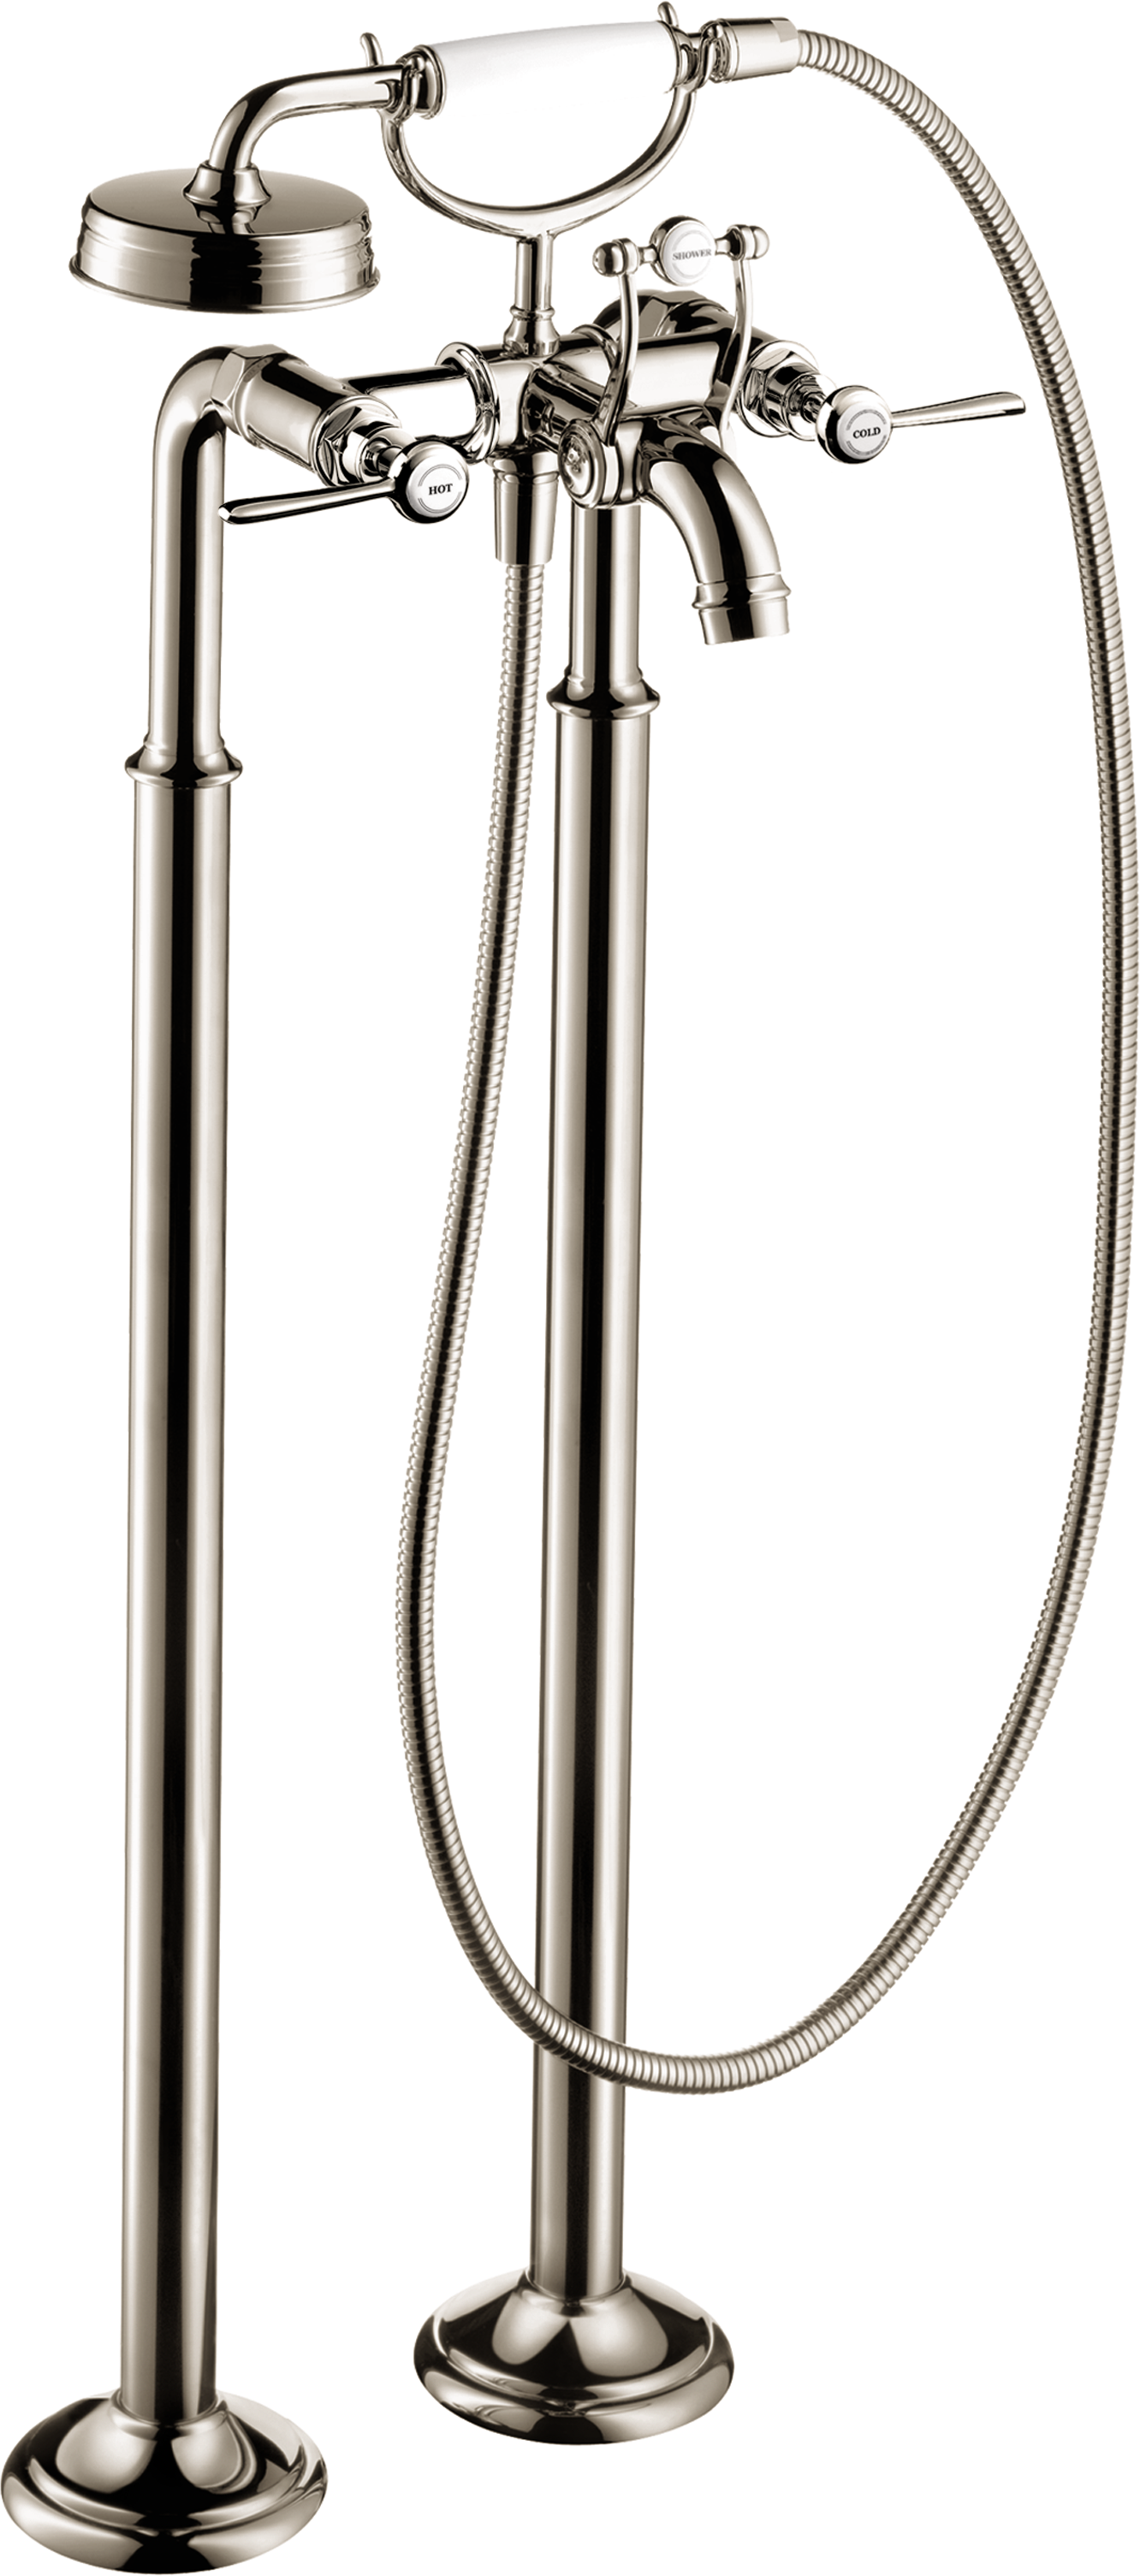 Axor AXOR Montreux Freestanding 2-Handle Tub Filler Trim with Lever Handles with 1.8 GPM Handshower